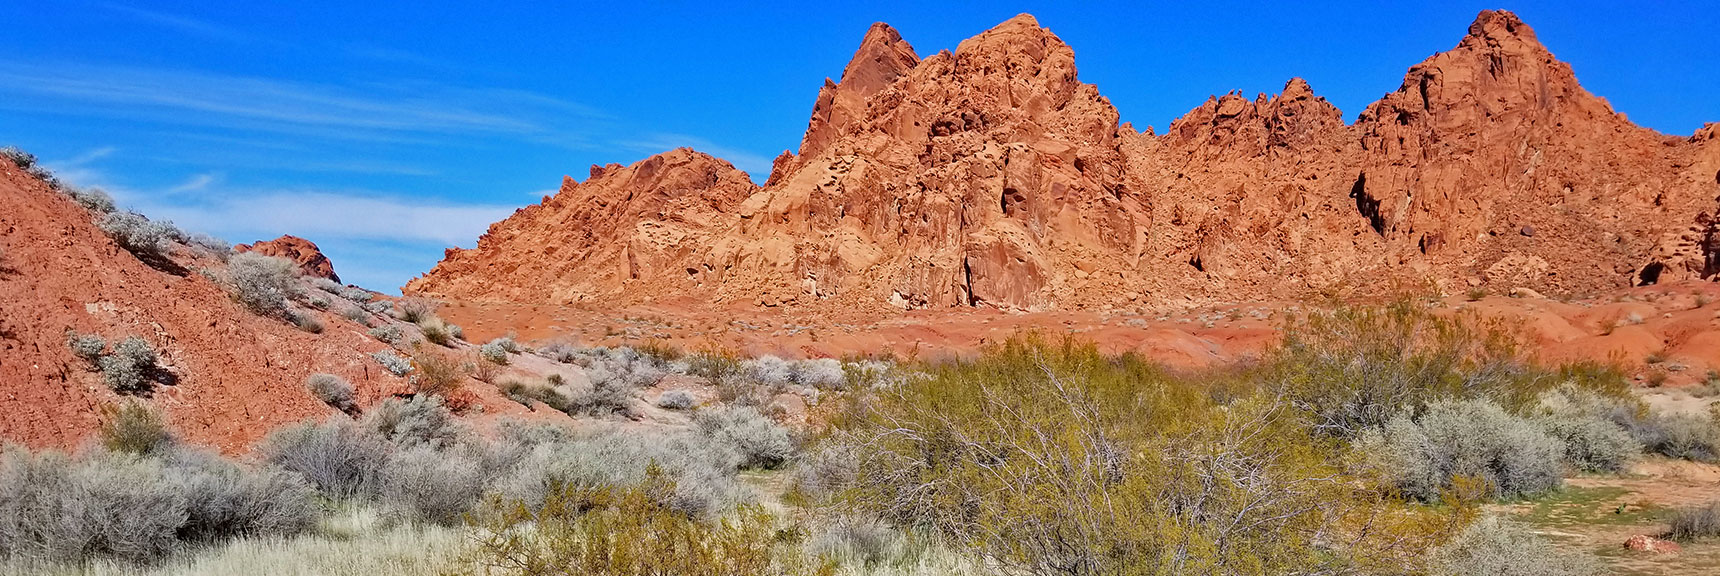 Starting Out on Natural Arches Trail, Valley of Fire State Park, Nevada